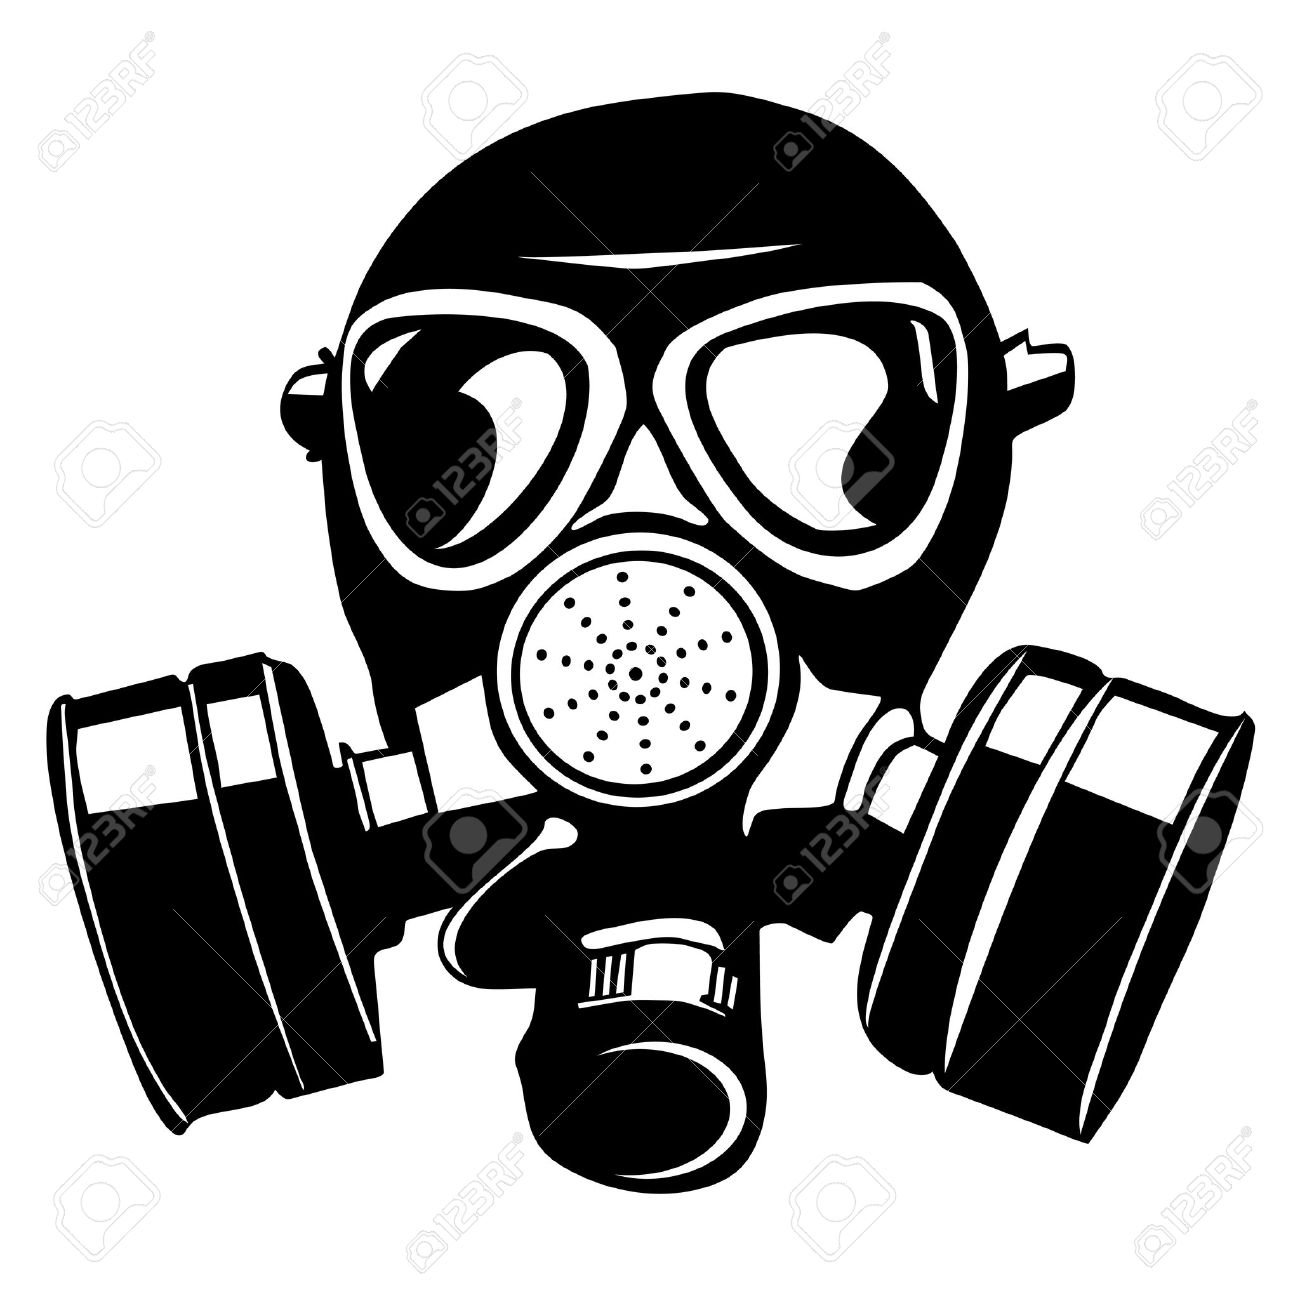 gas mask royalty free cliparts vectors and stock illustration rh 123rf com gas mask clip art free gas mask clip art free